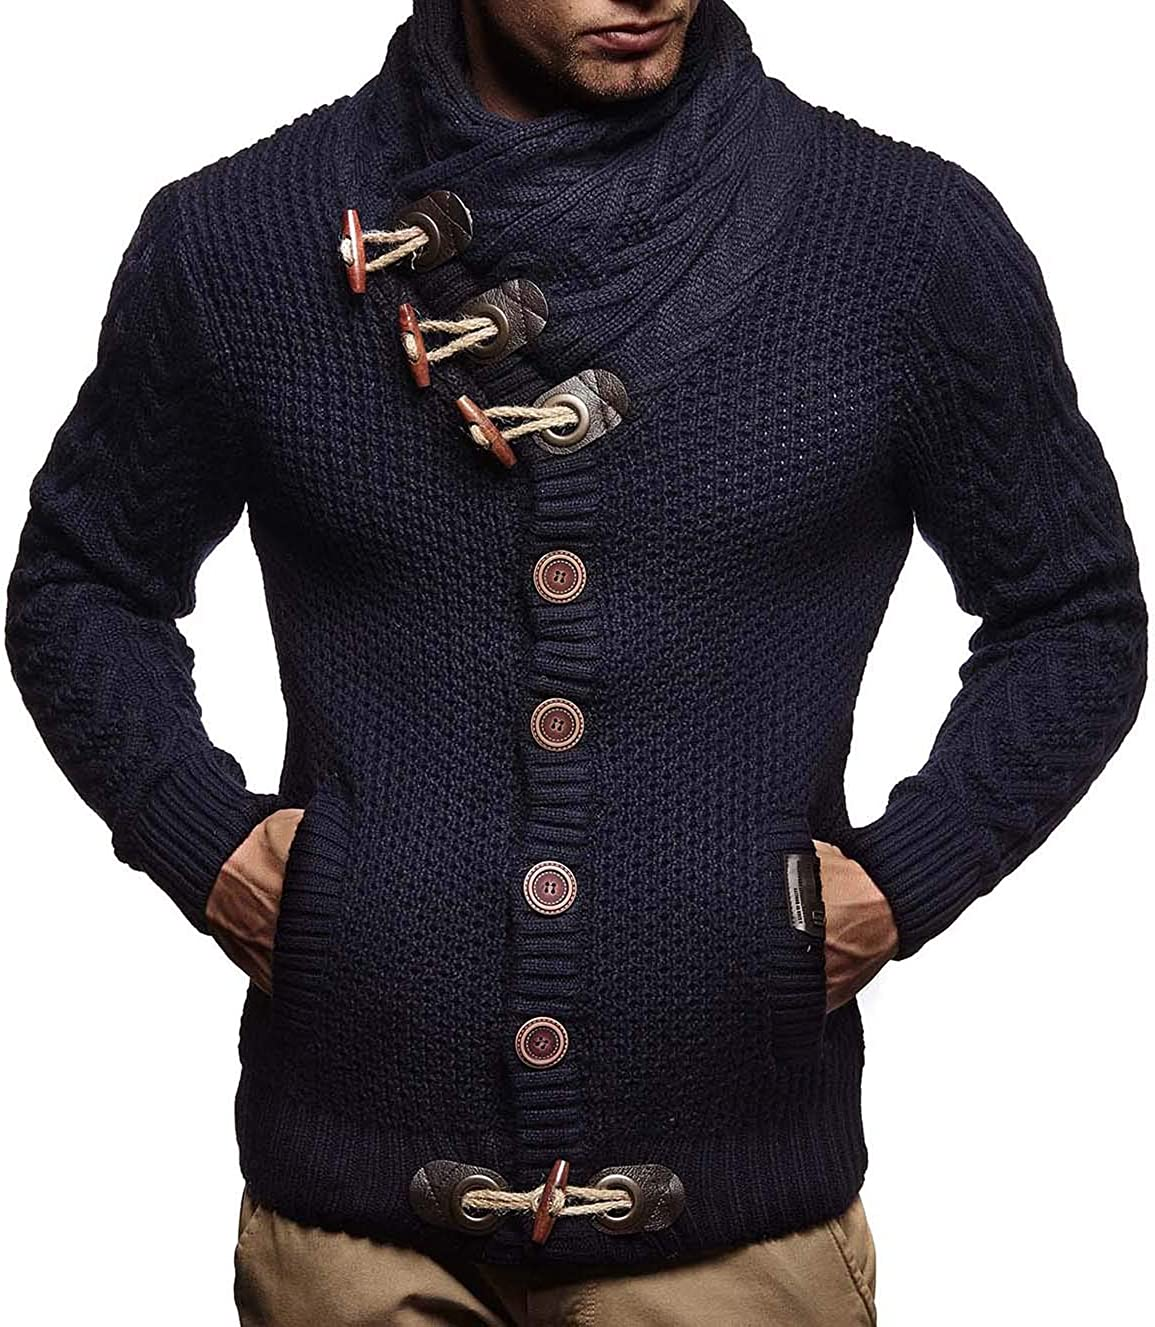 Leif Nelson Mens Knitted Jacket Turtleneck Cardigan Winter Pullover Hoodies Casual Sweaters Jumper LN4195